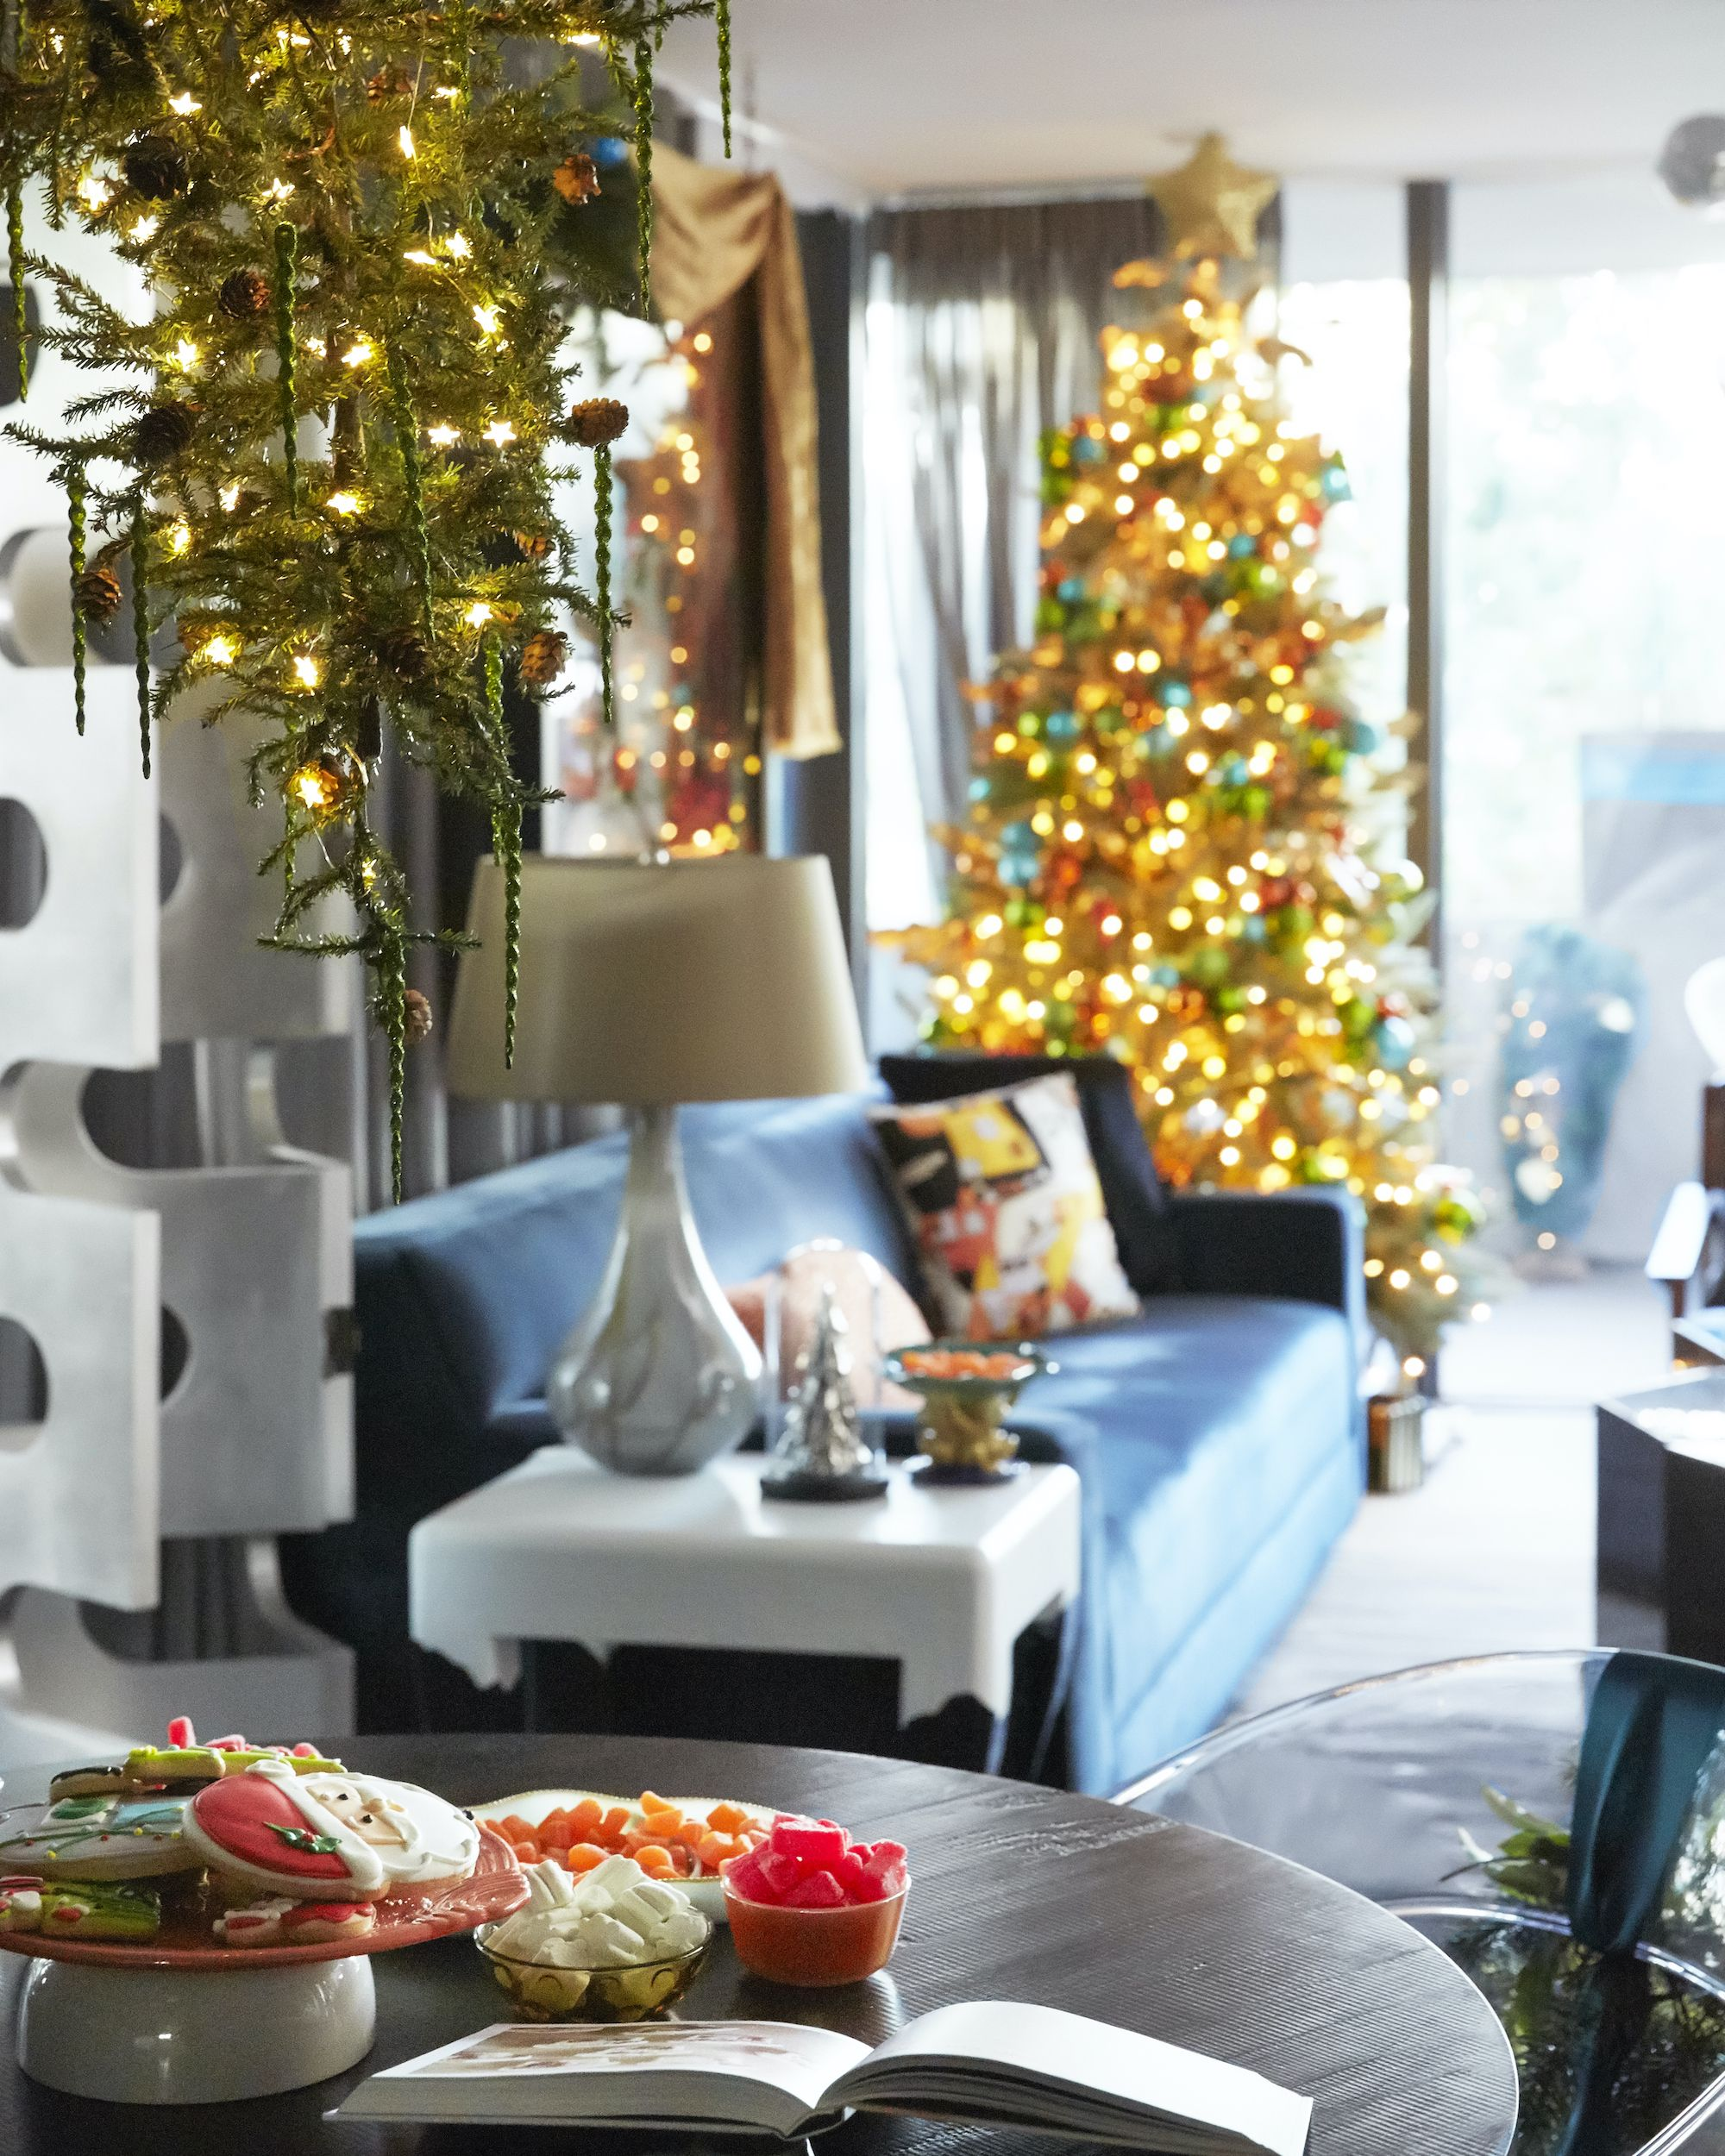 75 Christmas Decoration Ideas 2020 Stylish Holiday Decorating